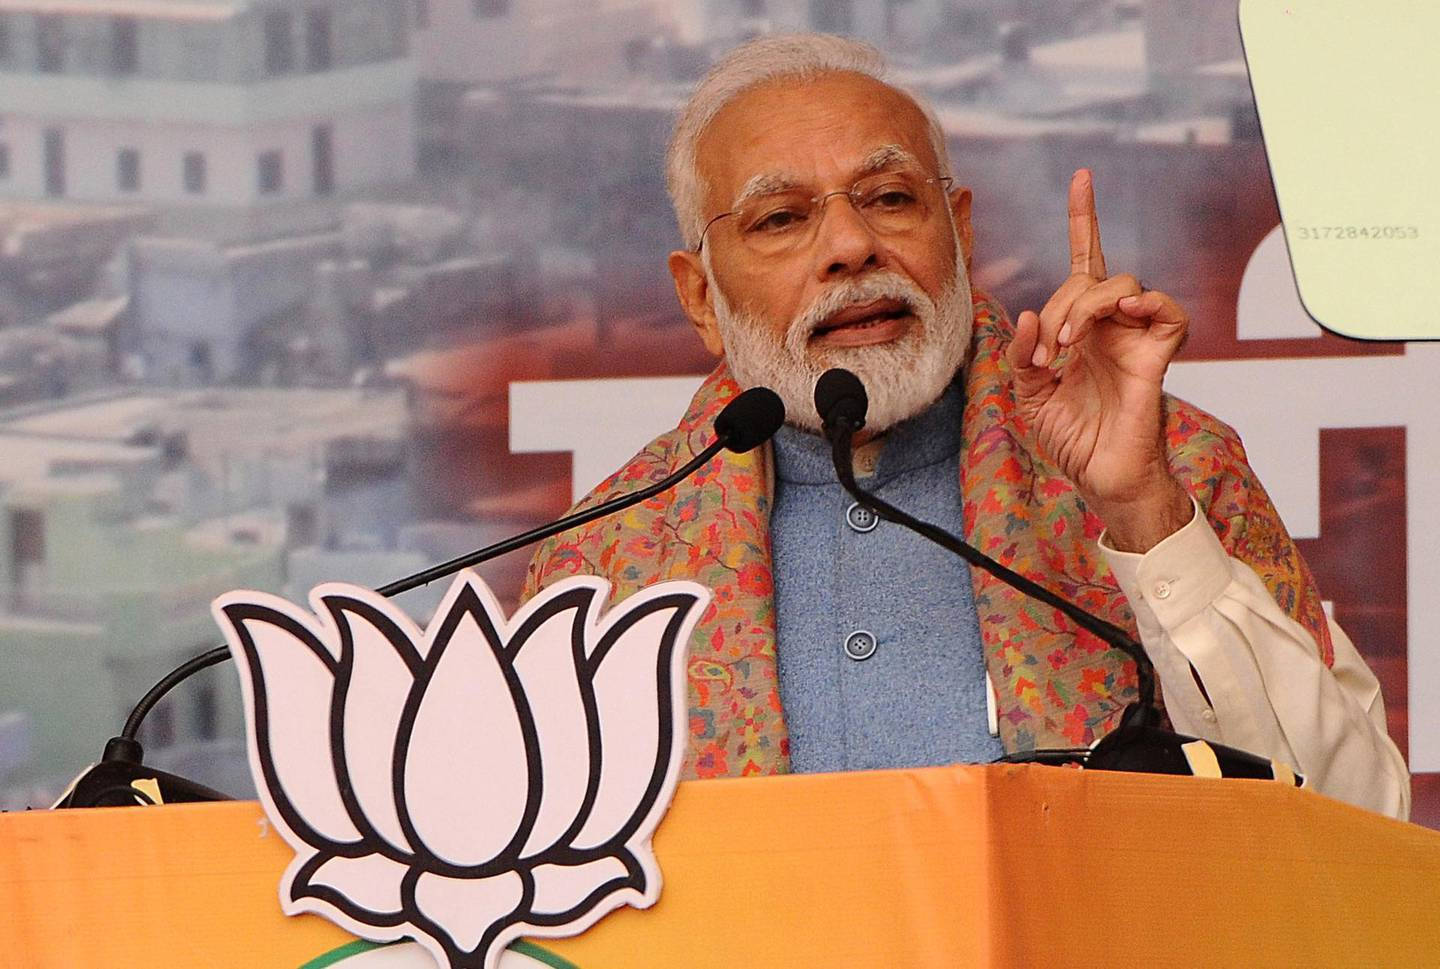 epa08086542 Indian Prime Minister Narendra Modi addresses a rally to launch Bharatiya Janata Party's (BJP) campaign for the upcoming Delhi assembly elections in New Delhi, India, 22 December 2019. Delhi Assembly elections are scheduled to be held in 2020.  EPA/STR